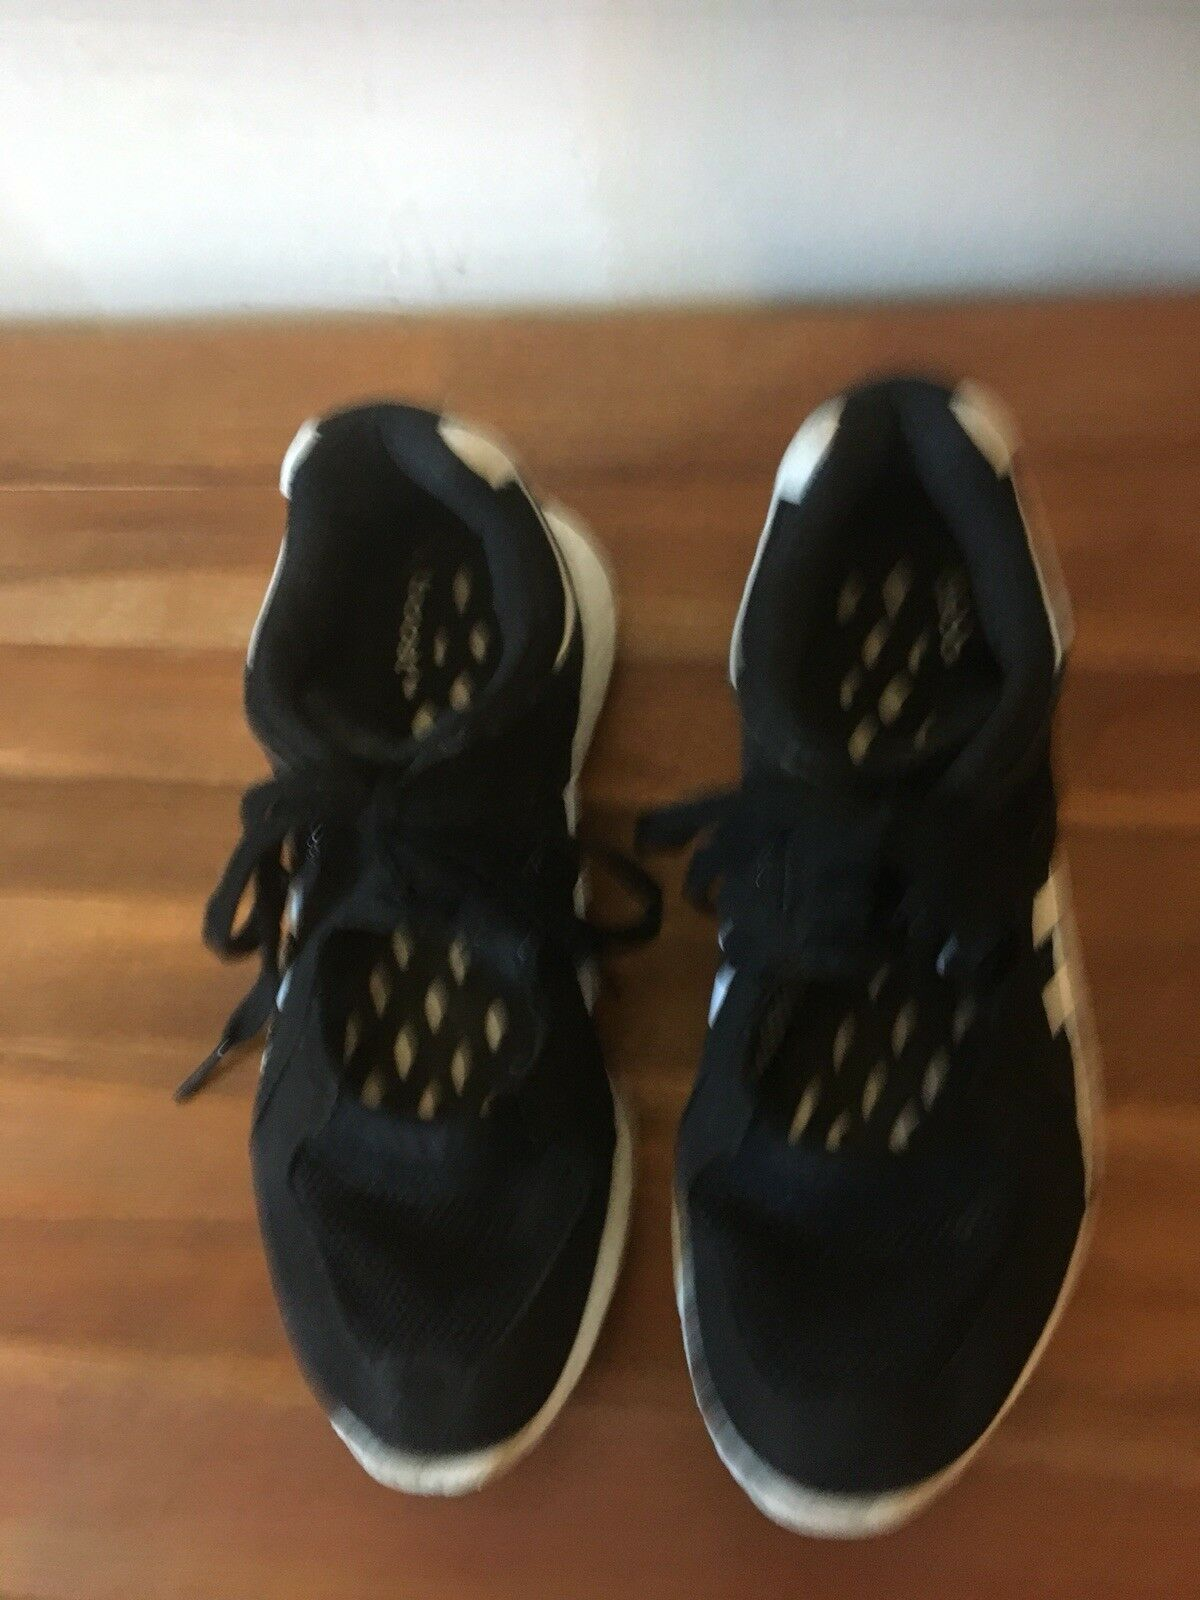 Adidas Running shoes And Sandal Summer Style Trainers Paid  For Them